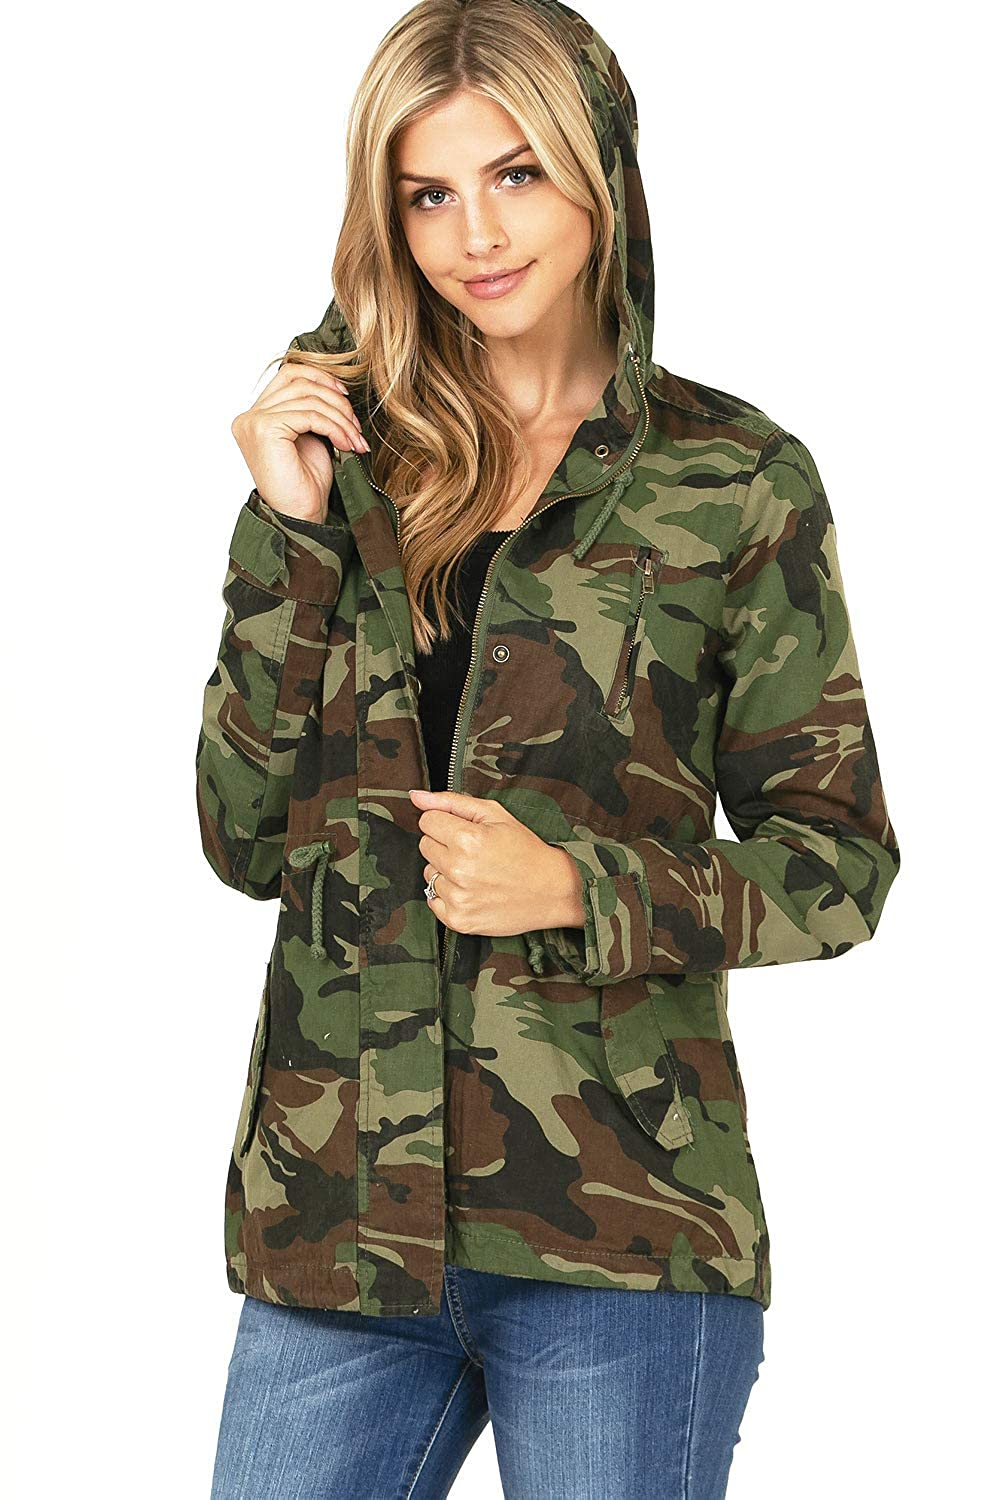 Camouflage Ambiance Women's Juniors Camouflage Army Print Utility Cargo Jacket